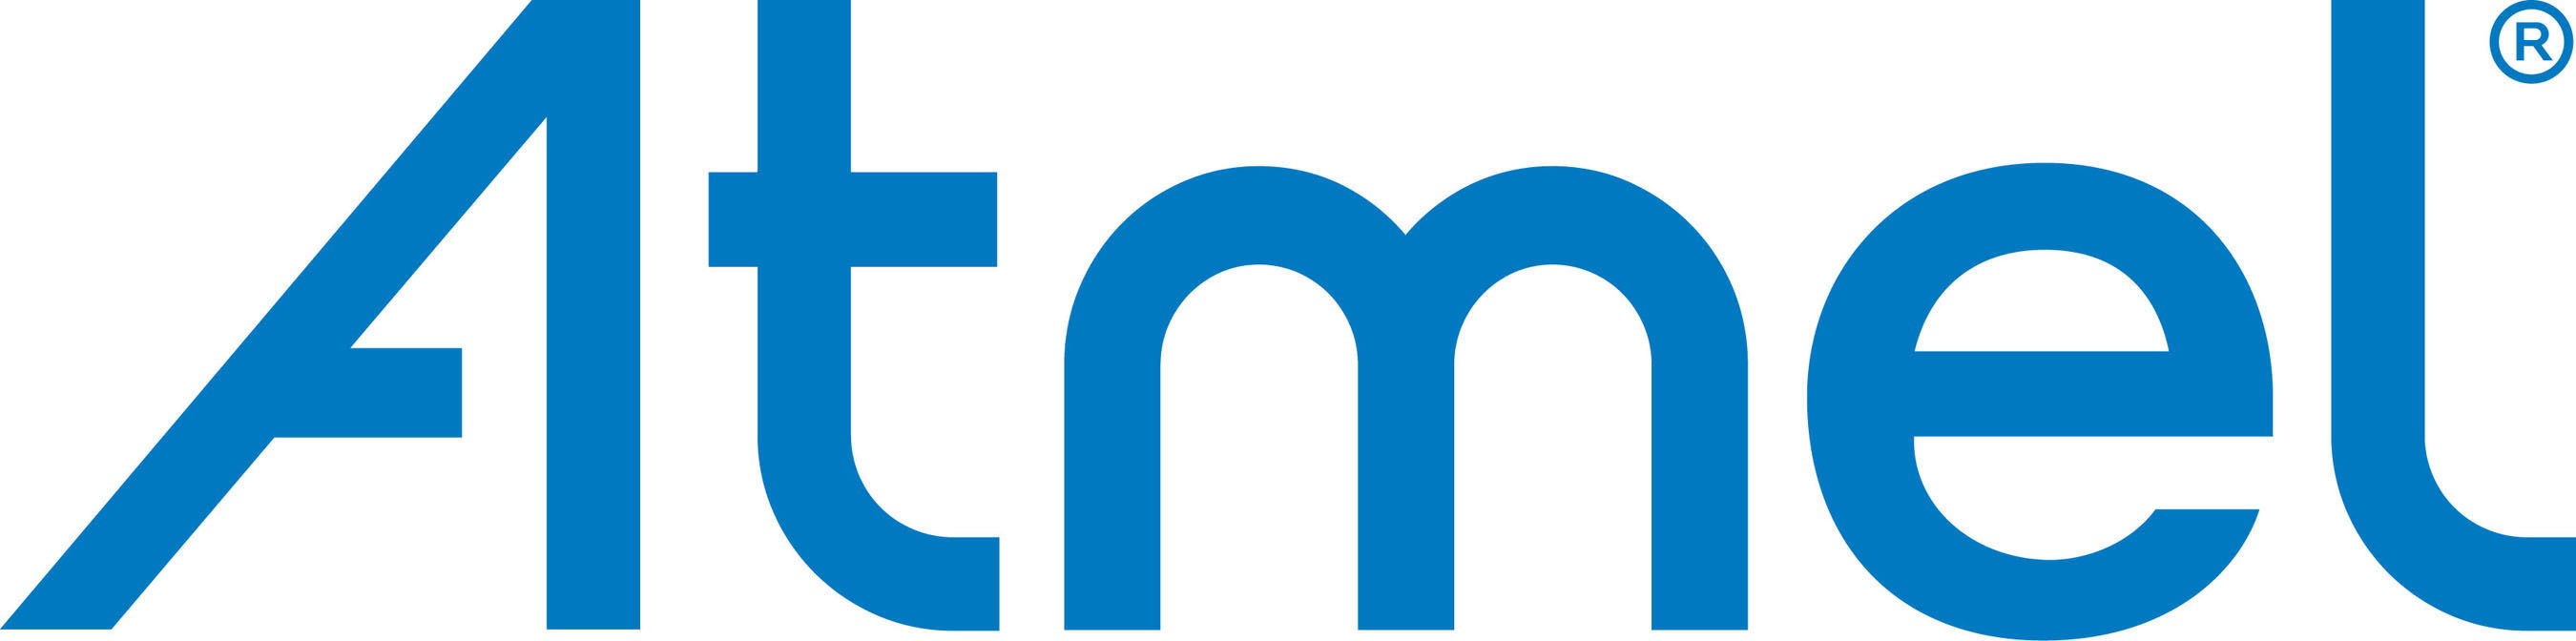 Atmel Extends Automotive Leadership, Launches New CAN Transceiver Family